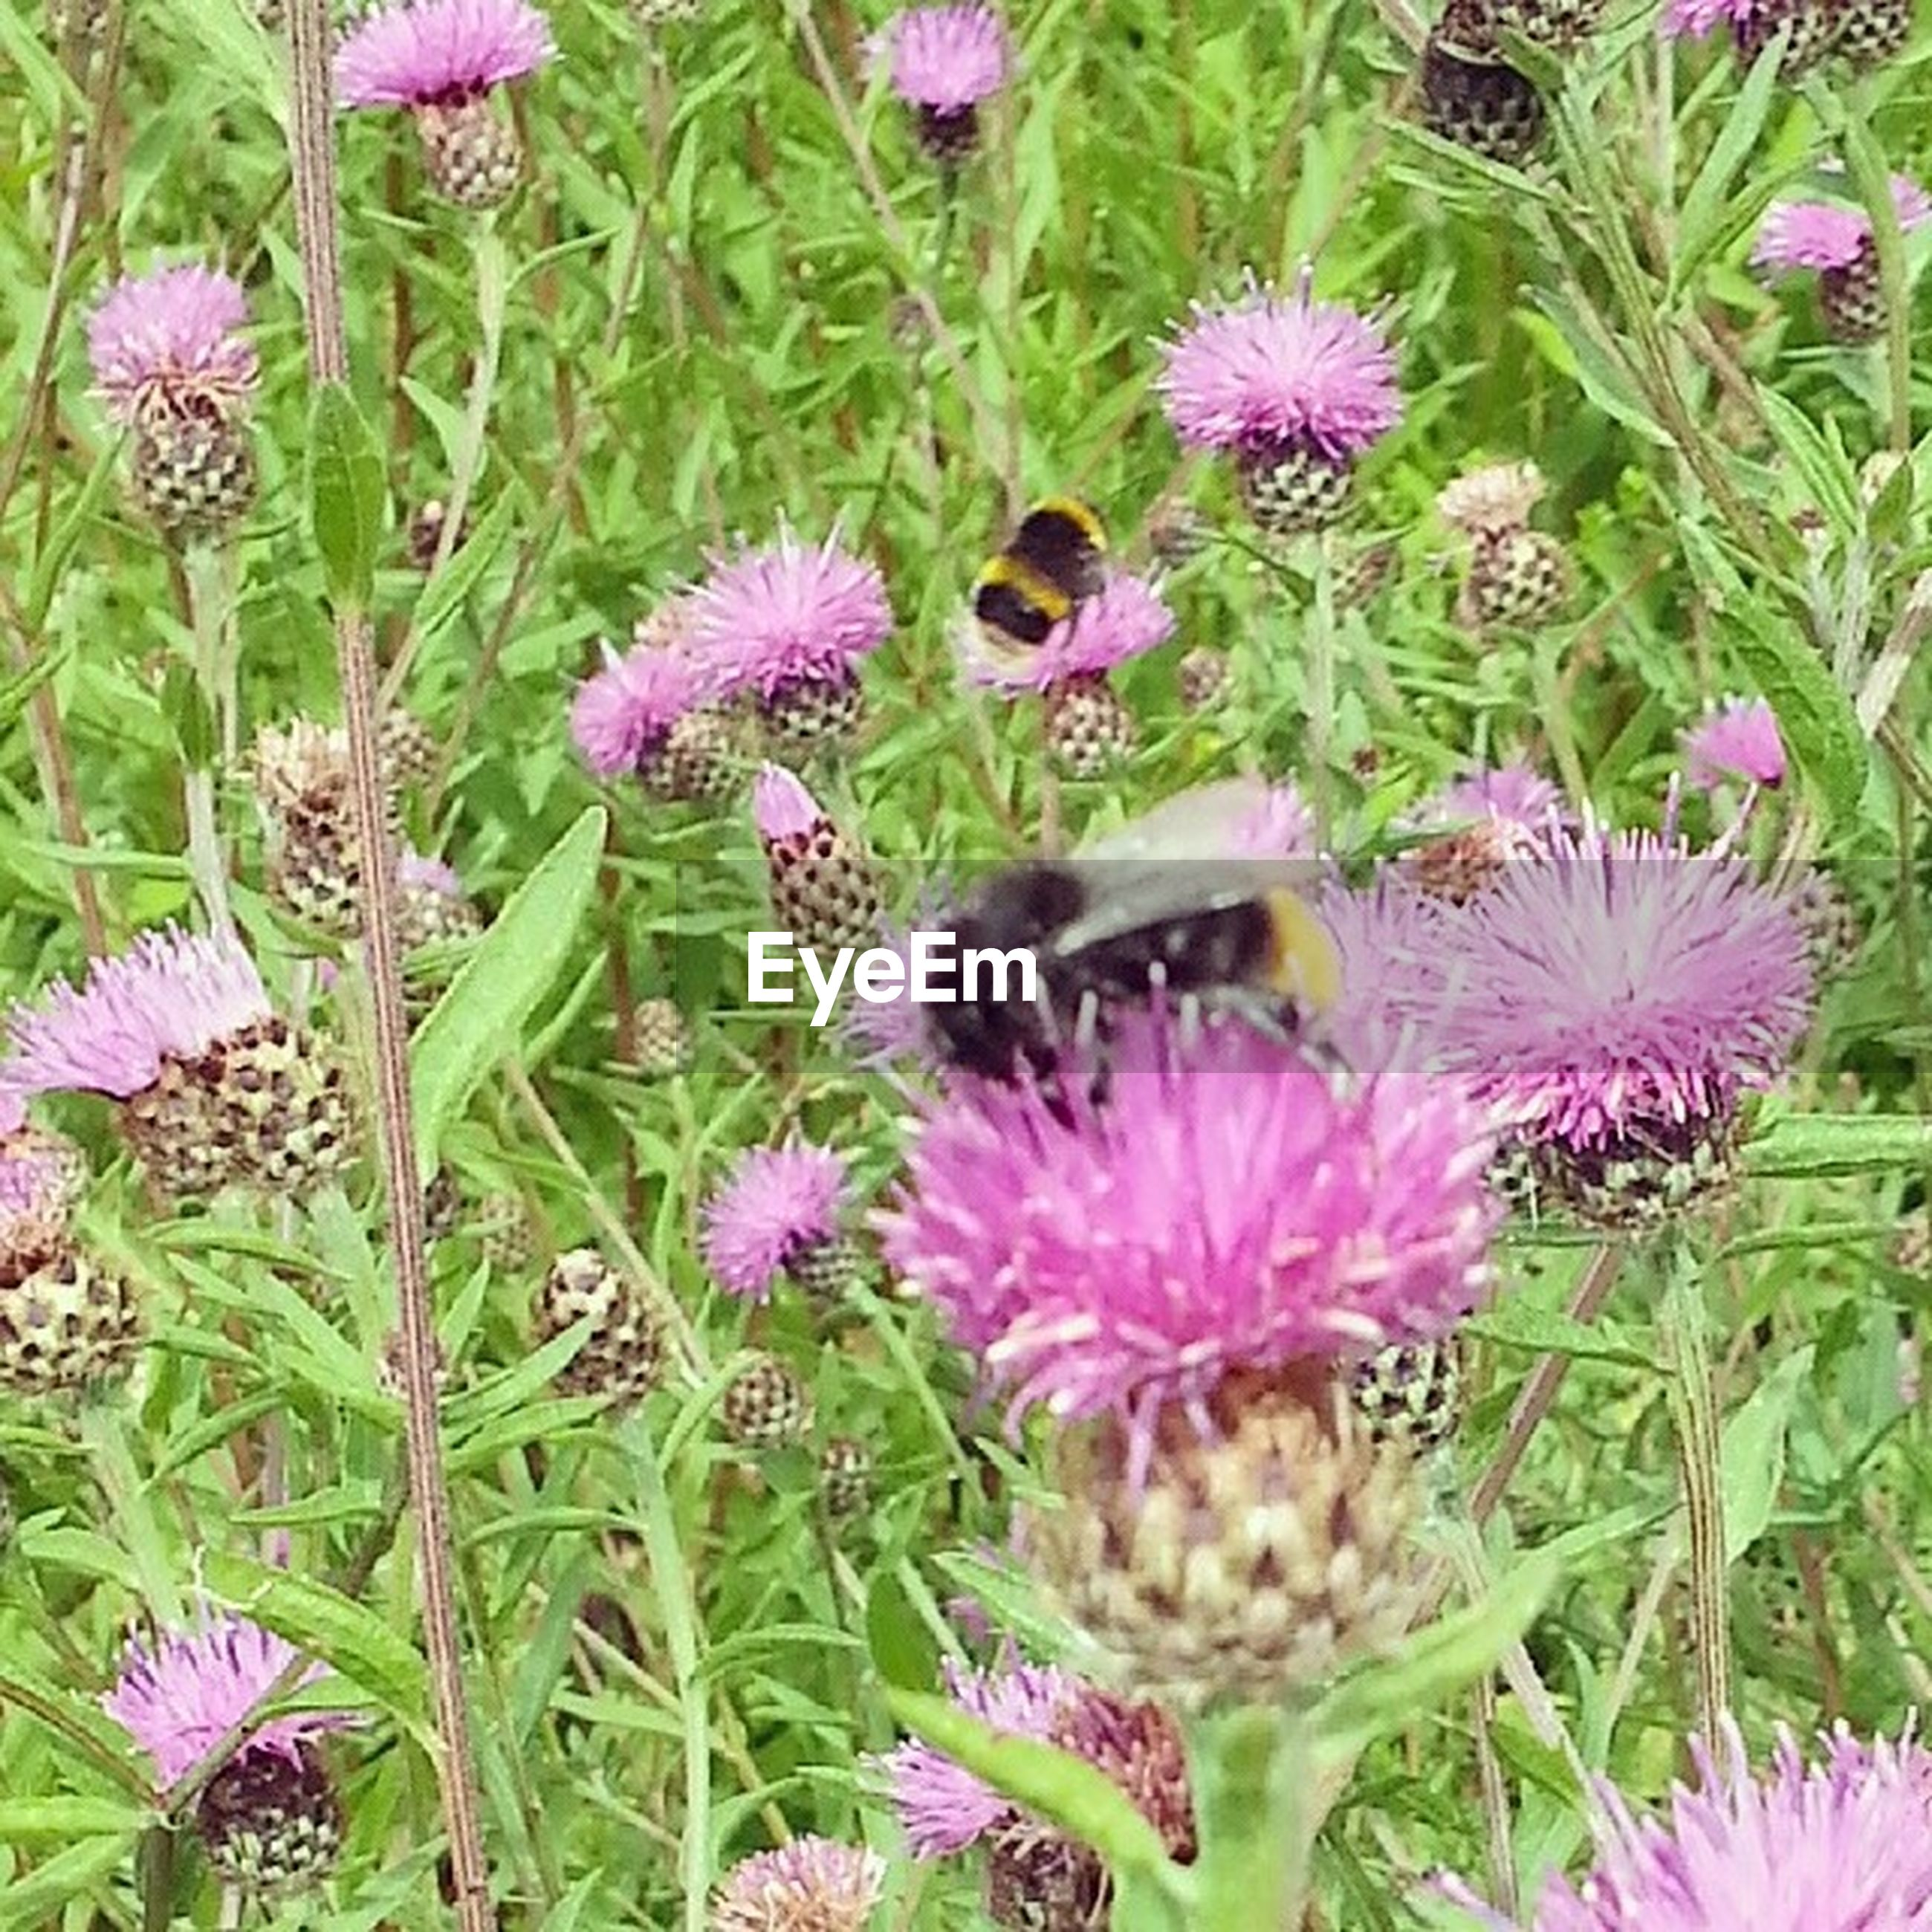 flower, freshness, fragility, purple, growth, petal, beauty in nature, insect, plant, flower head, pink color, nature, one animal, close-up, animals in the wild, blooming, animal themes, pollination, wildlife, focus on foreground